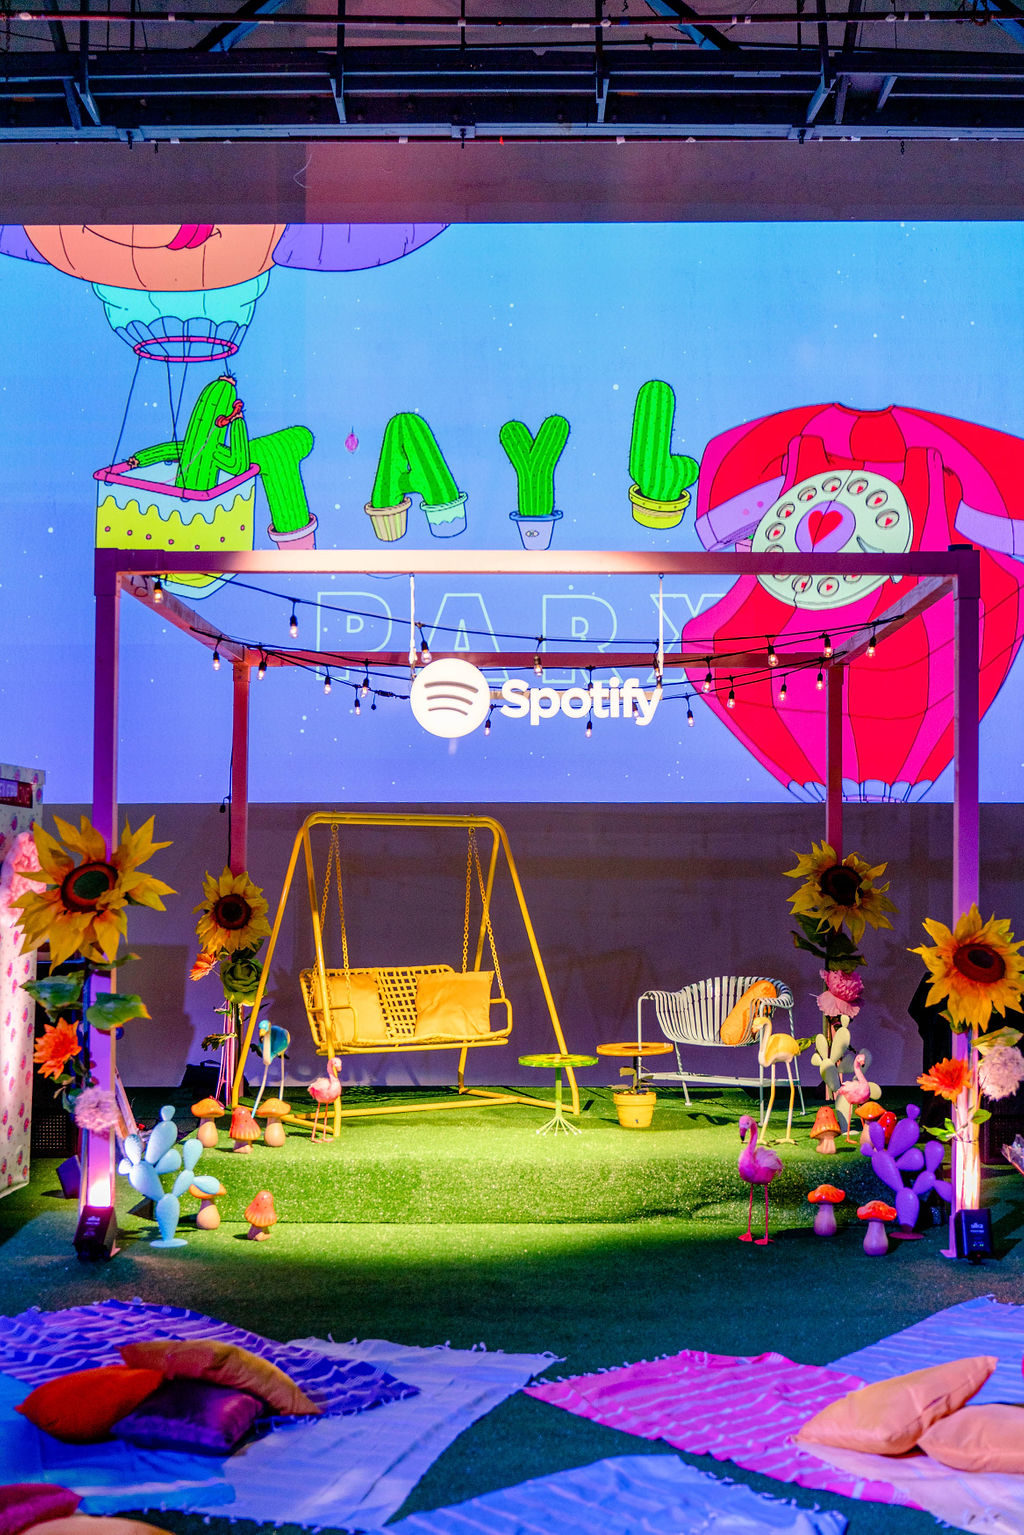 Animation for Spotify x Tayla Parx Event